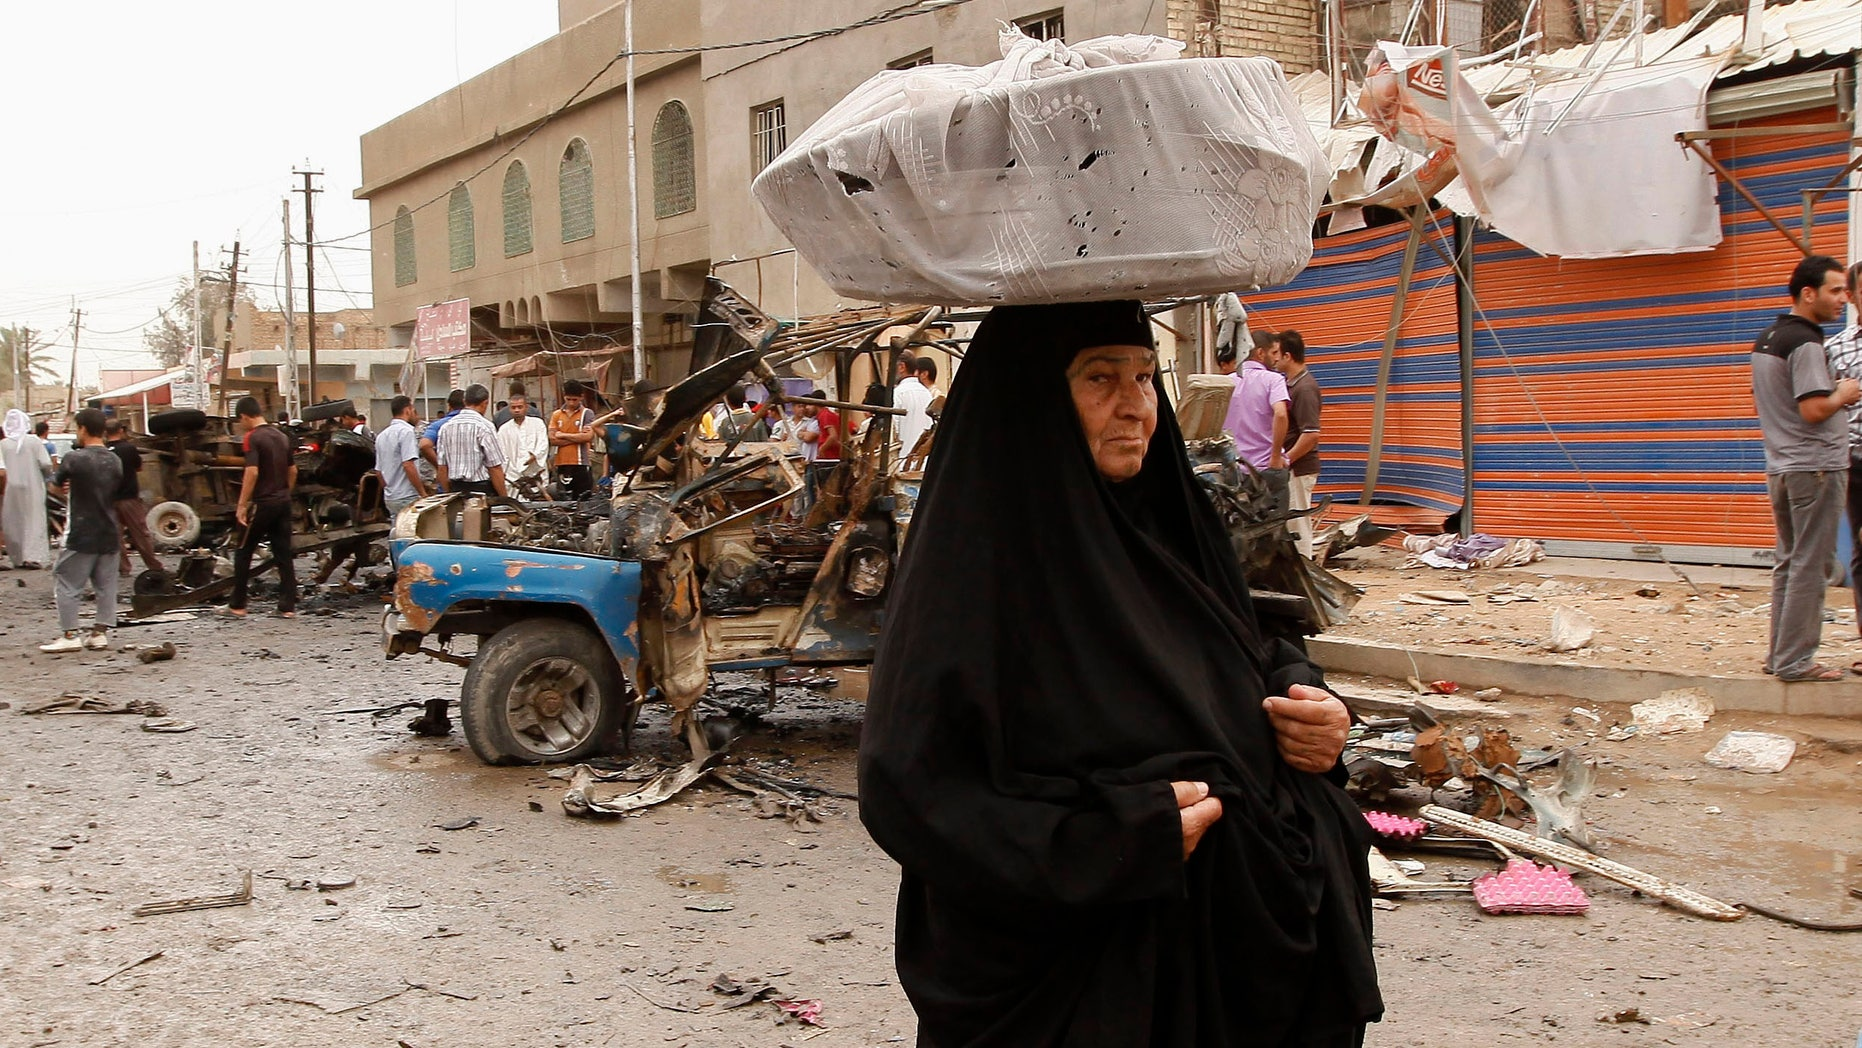 An Iraqi woman, who sells milk, passes by the scene of a car bomb attack in the Kamaliyah neighborhood, a predominantly Shiite area of eastern Baghdad, Iraq, Monday, May 20, 2013. A wave of car bombings across Baghdad's Shiite neighborhoods and in the southern city of Basra killed and wounded scores of people, police said. (AP Photo/ Hadi Mizban)